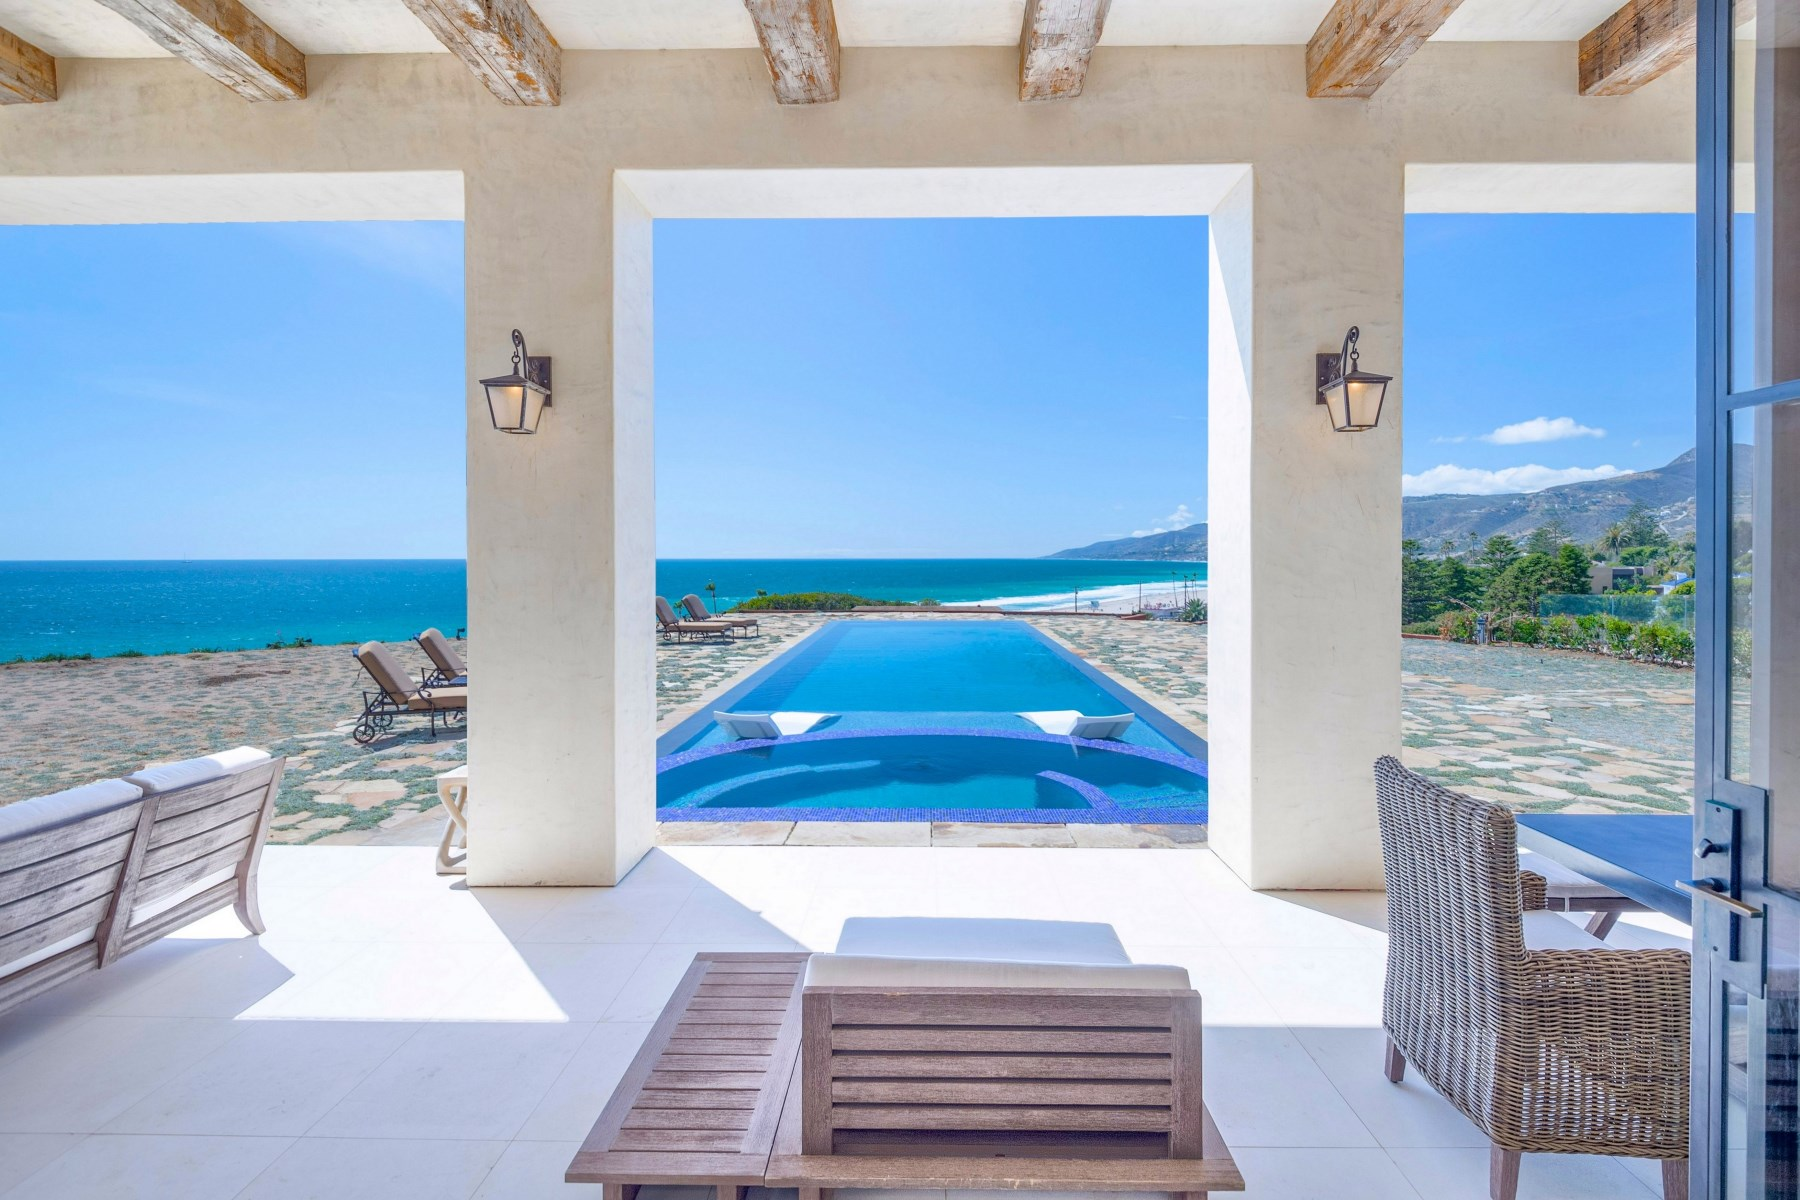 Other Residential for Active at Villa Sogno - Malibu Malibu, California 90265 United States